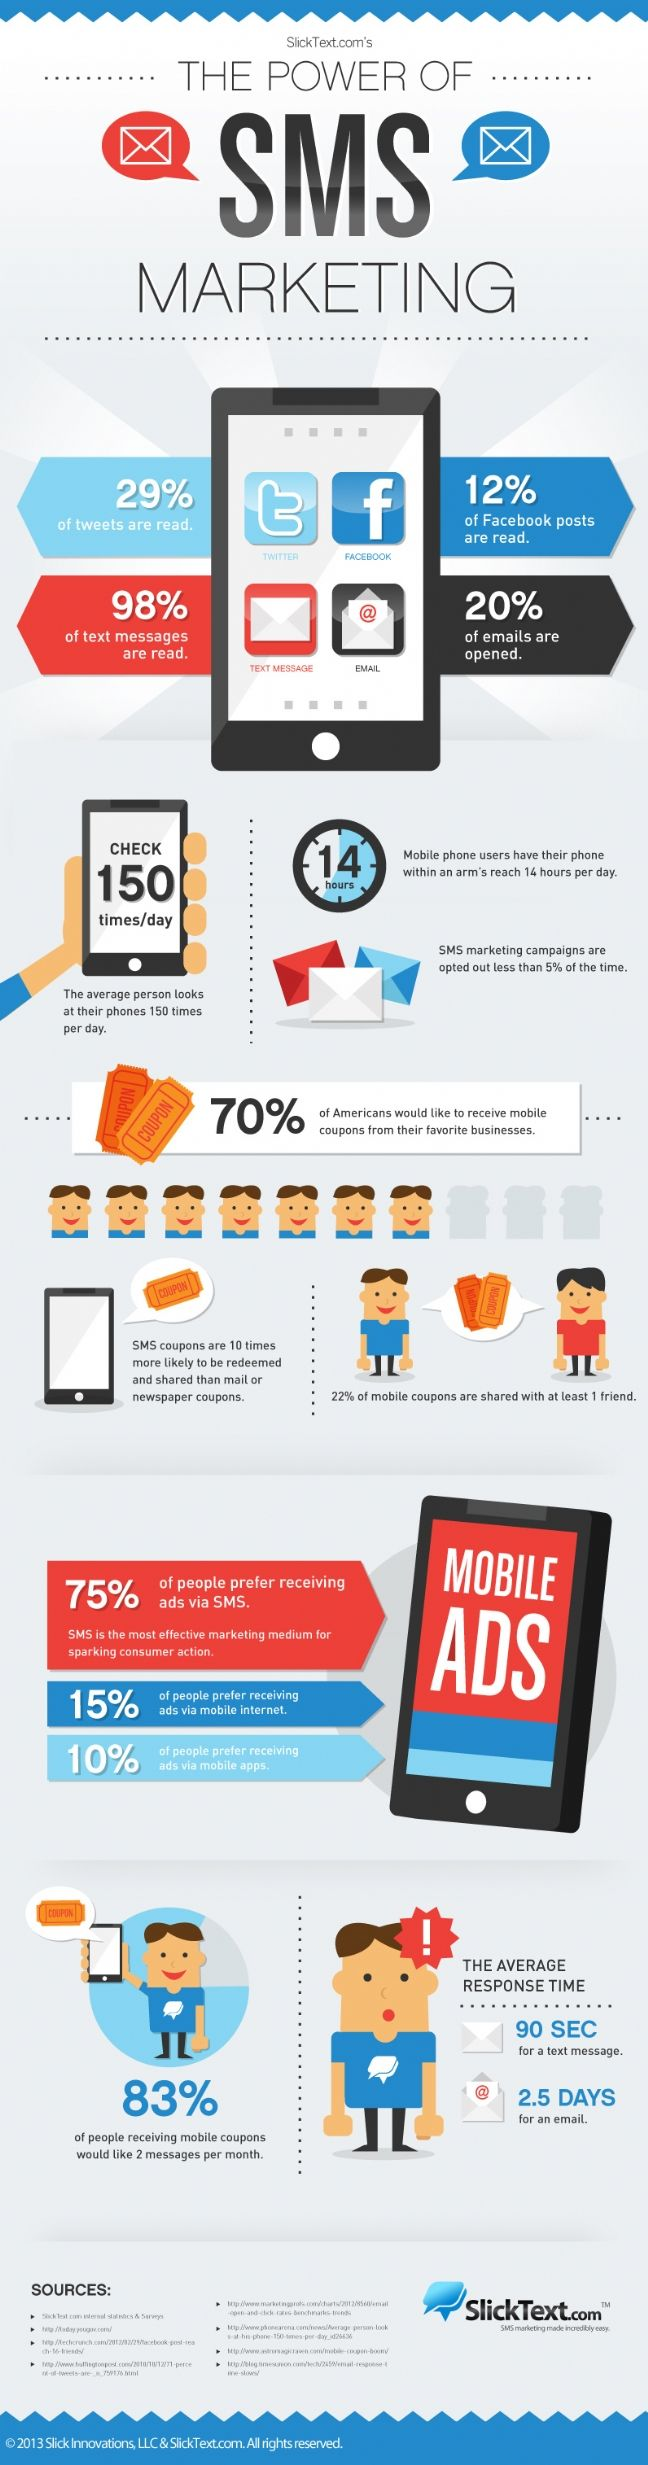 The power of SMS Marketing #marketing #mcommerce #mobile